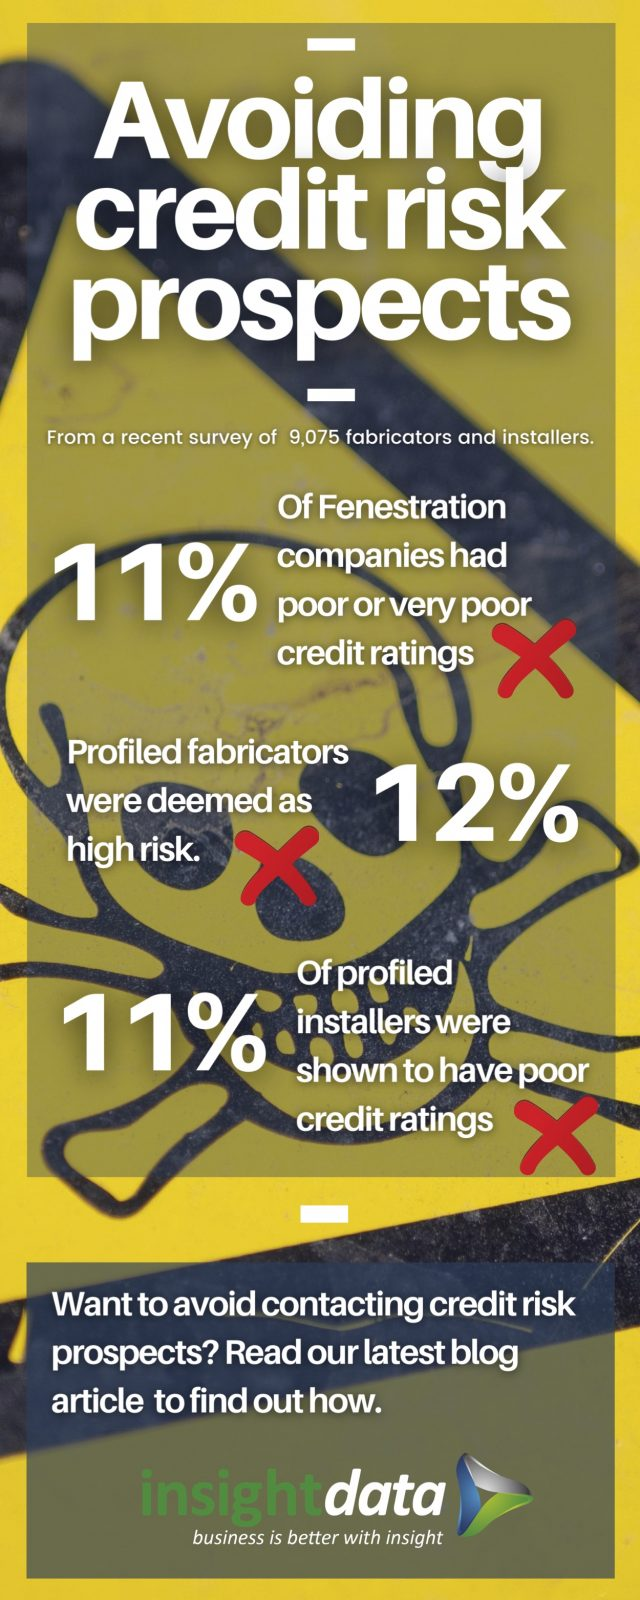 infographic of credit risk in the fenestration industry